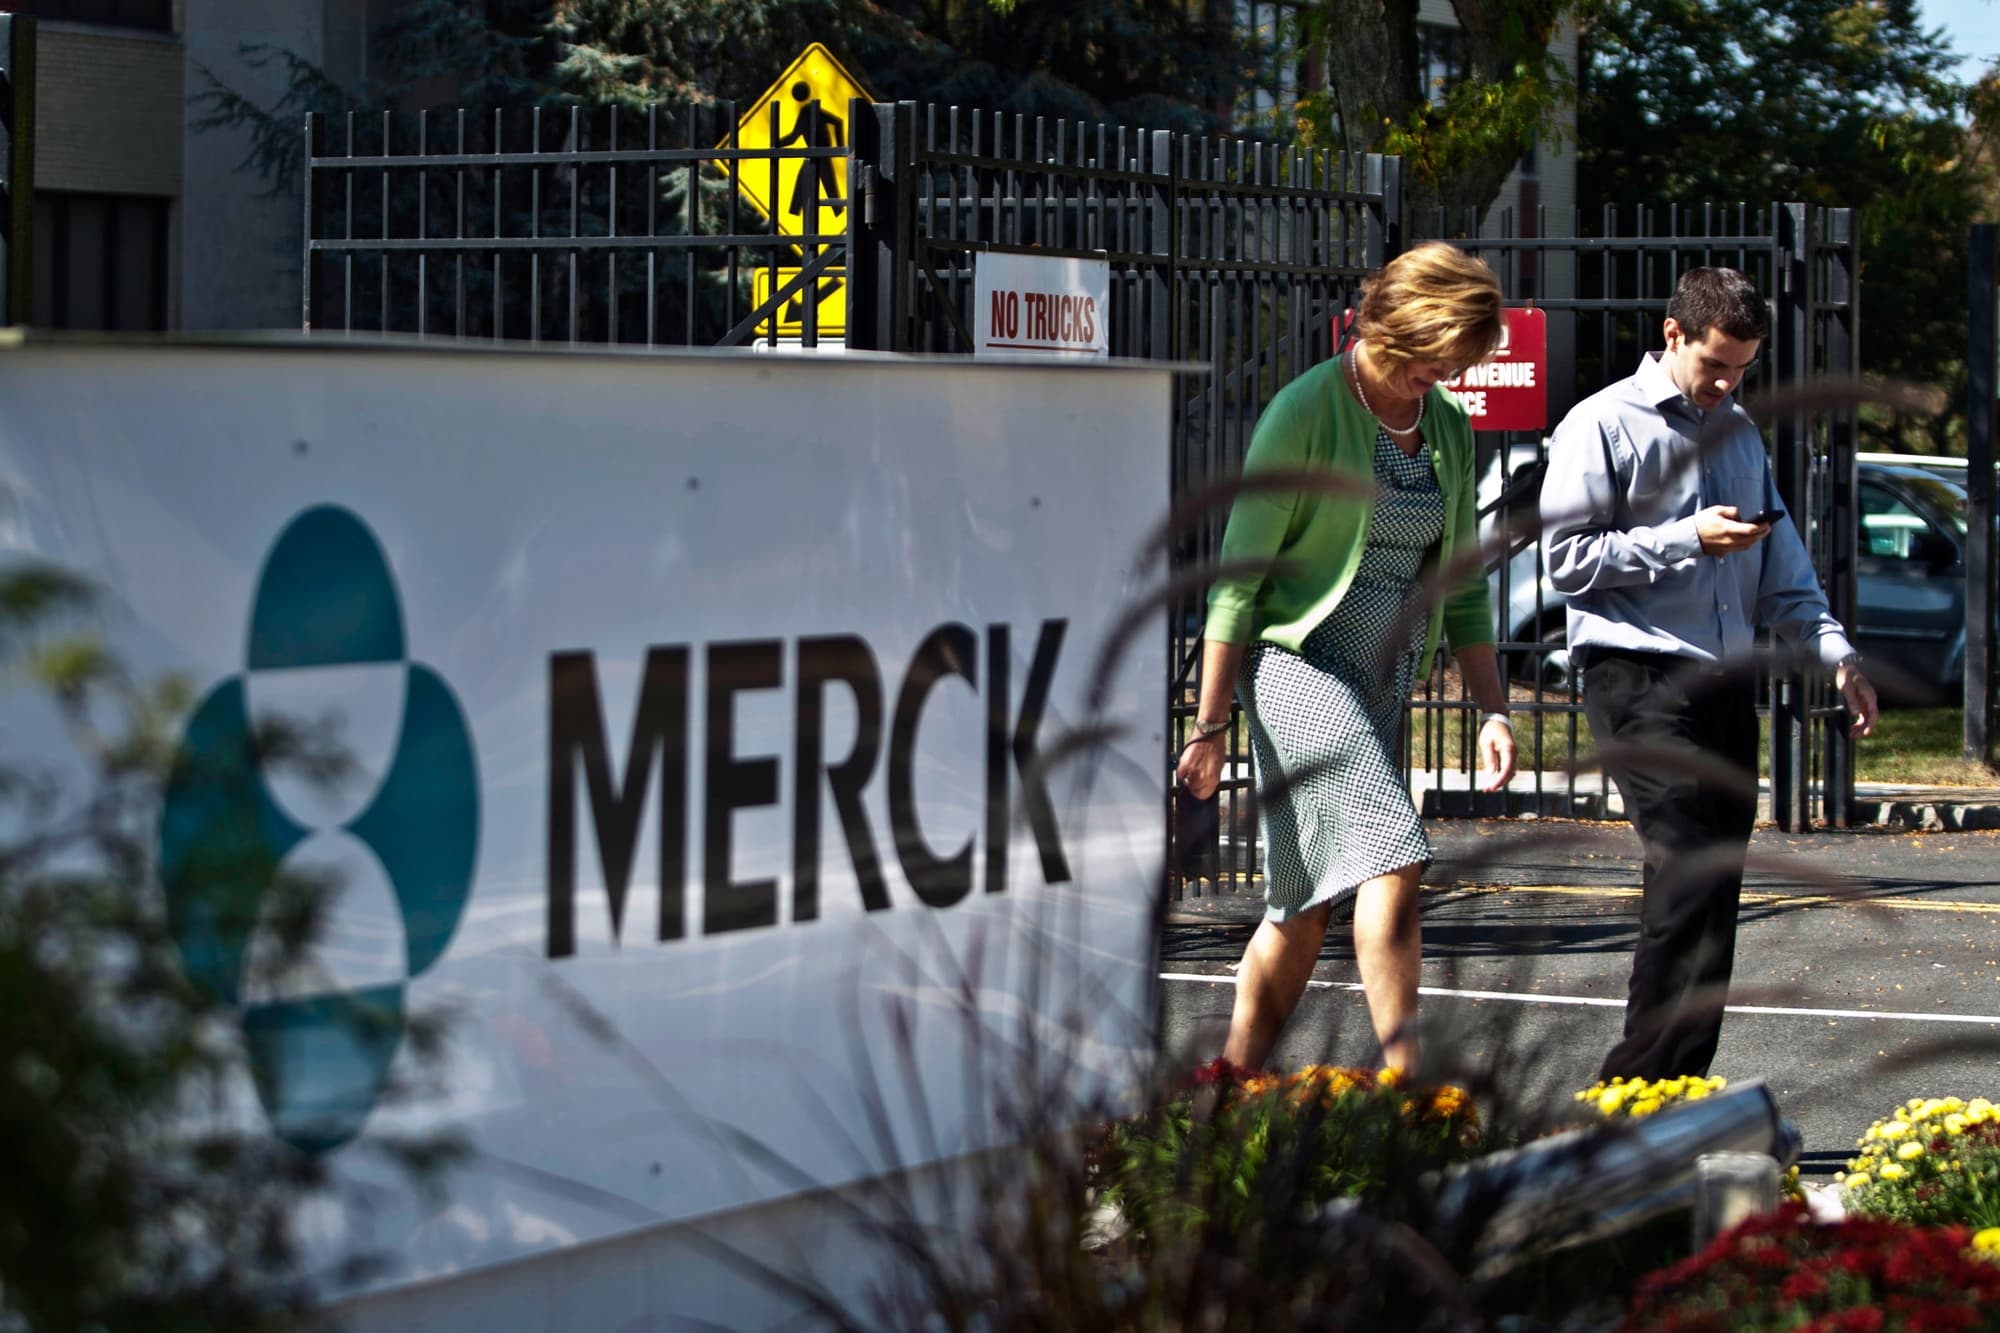 Goldman Upgrades Merck Calls It One Of Its Top Stocks